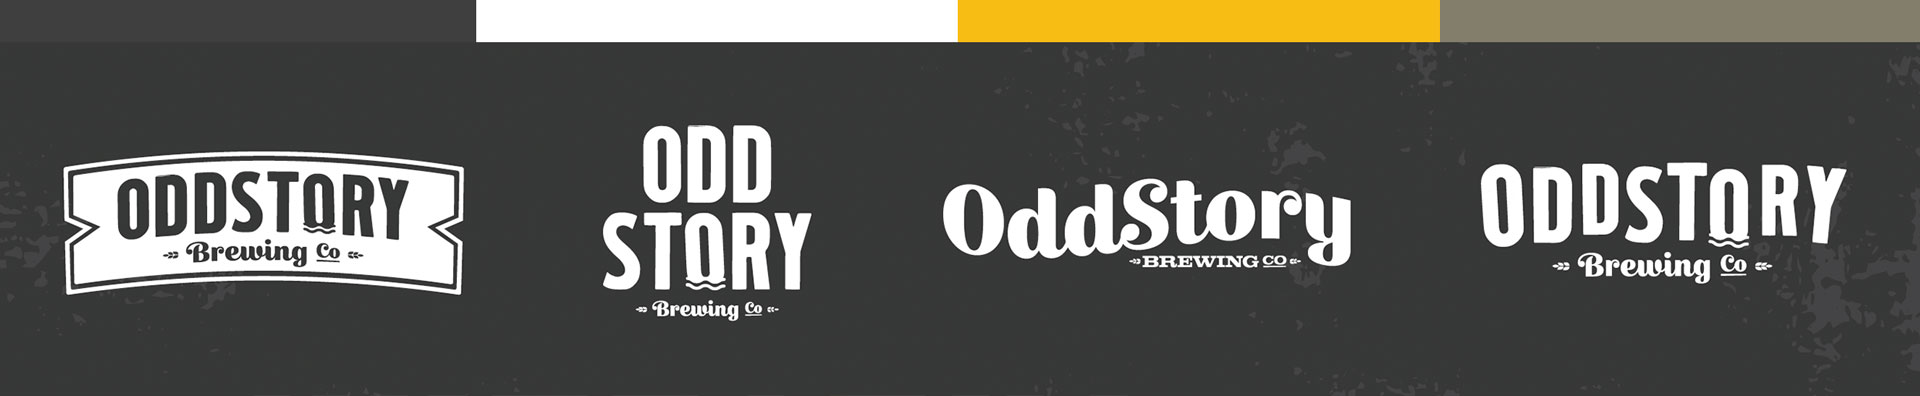 OddStory Brewing Co. - Identity, Logos, Color Palette, Branding